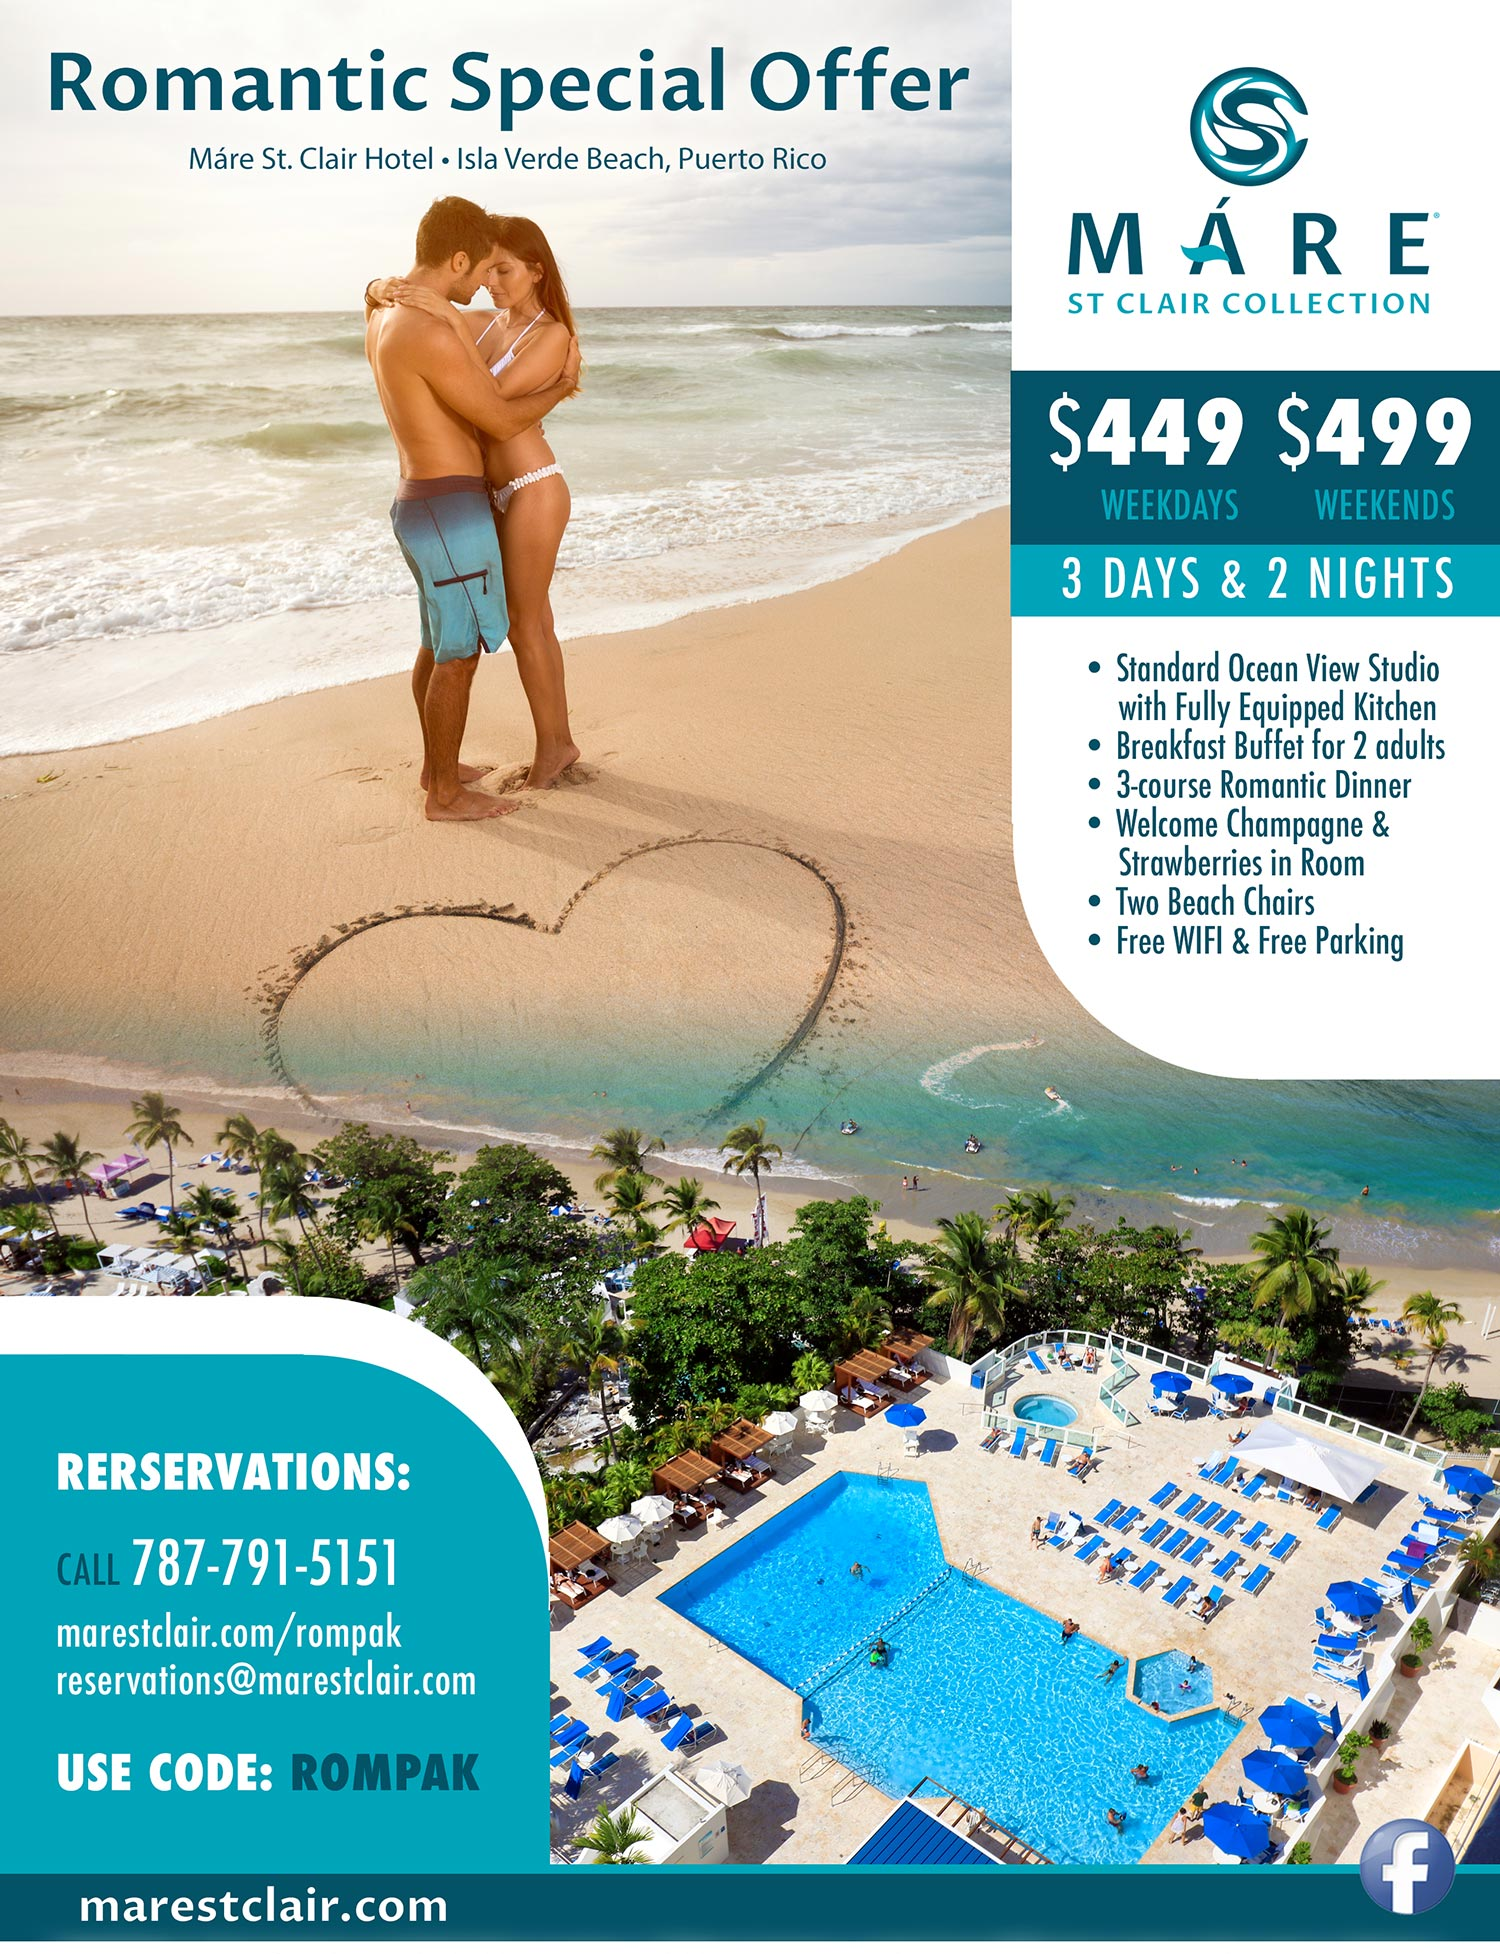 Romantic Special Offer Máre St. Clair Hotel, Isla Verde Beach, Puerto Rico